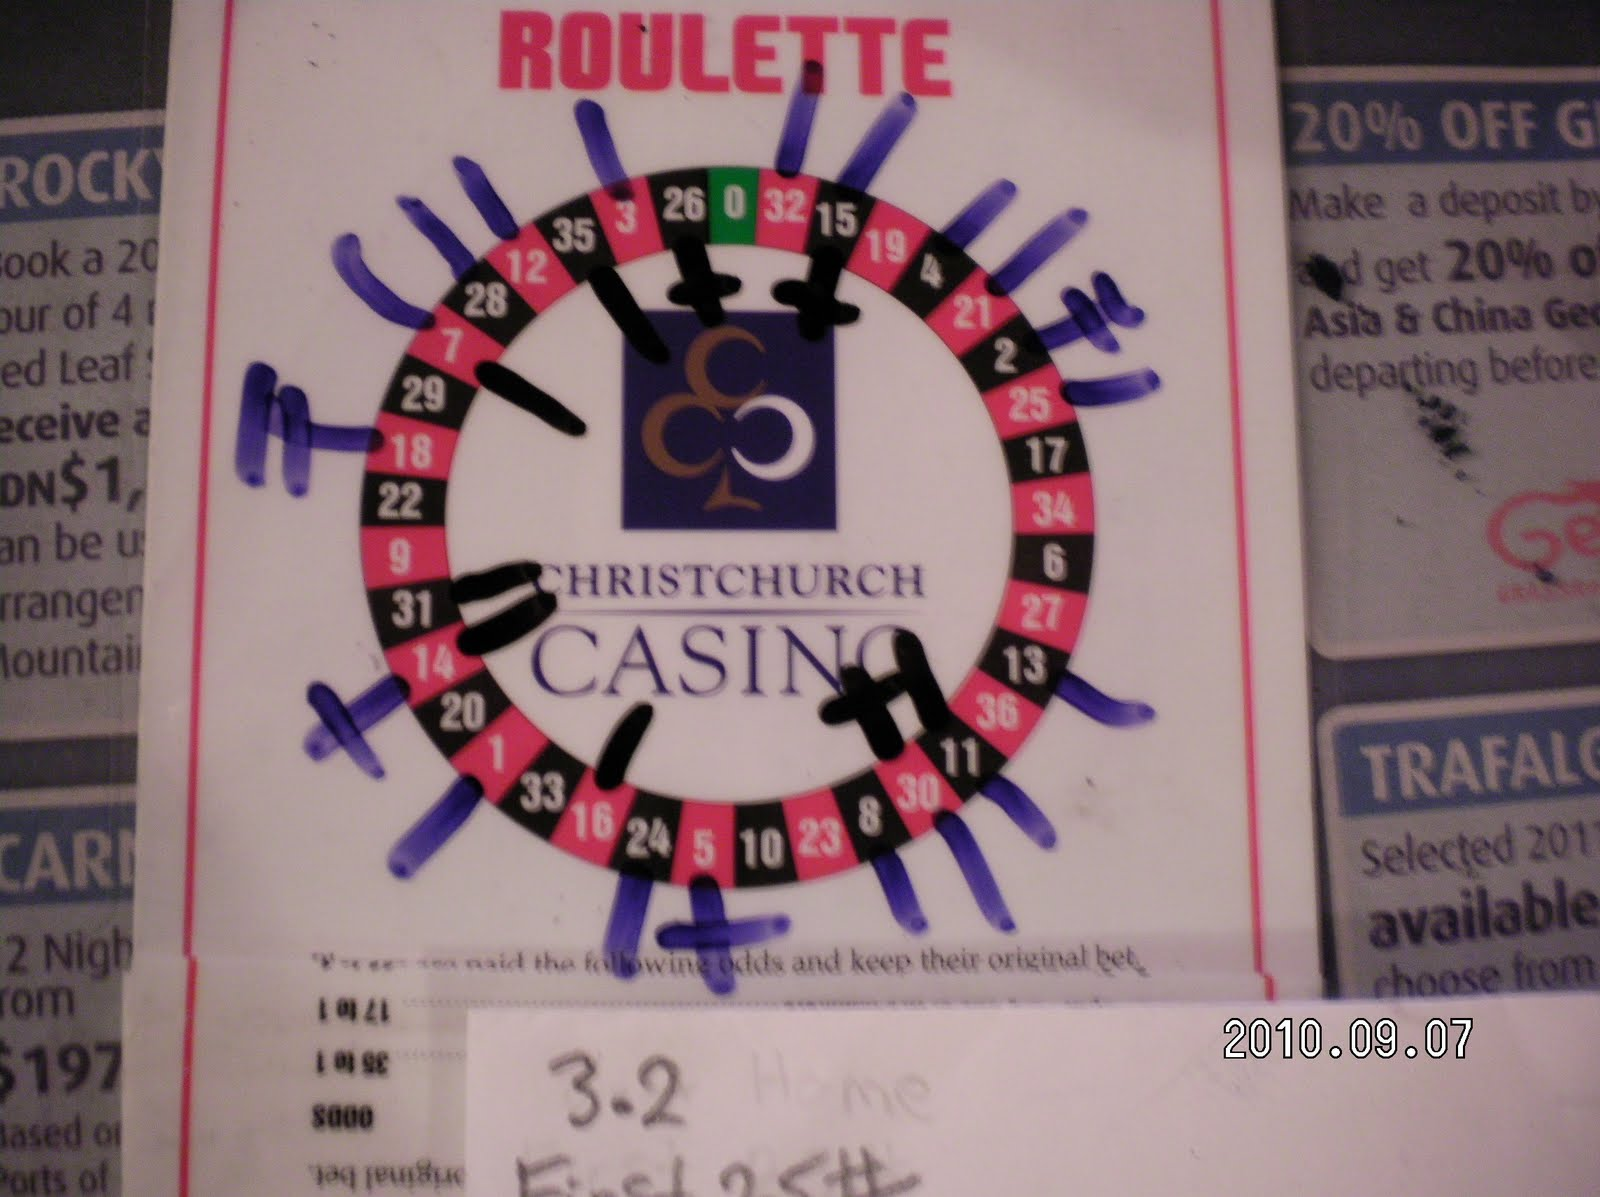 most roulette winning numbers